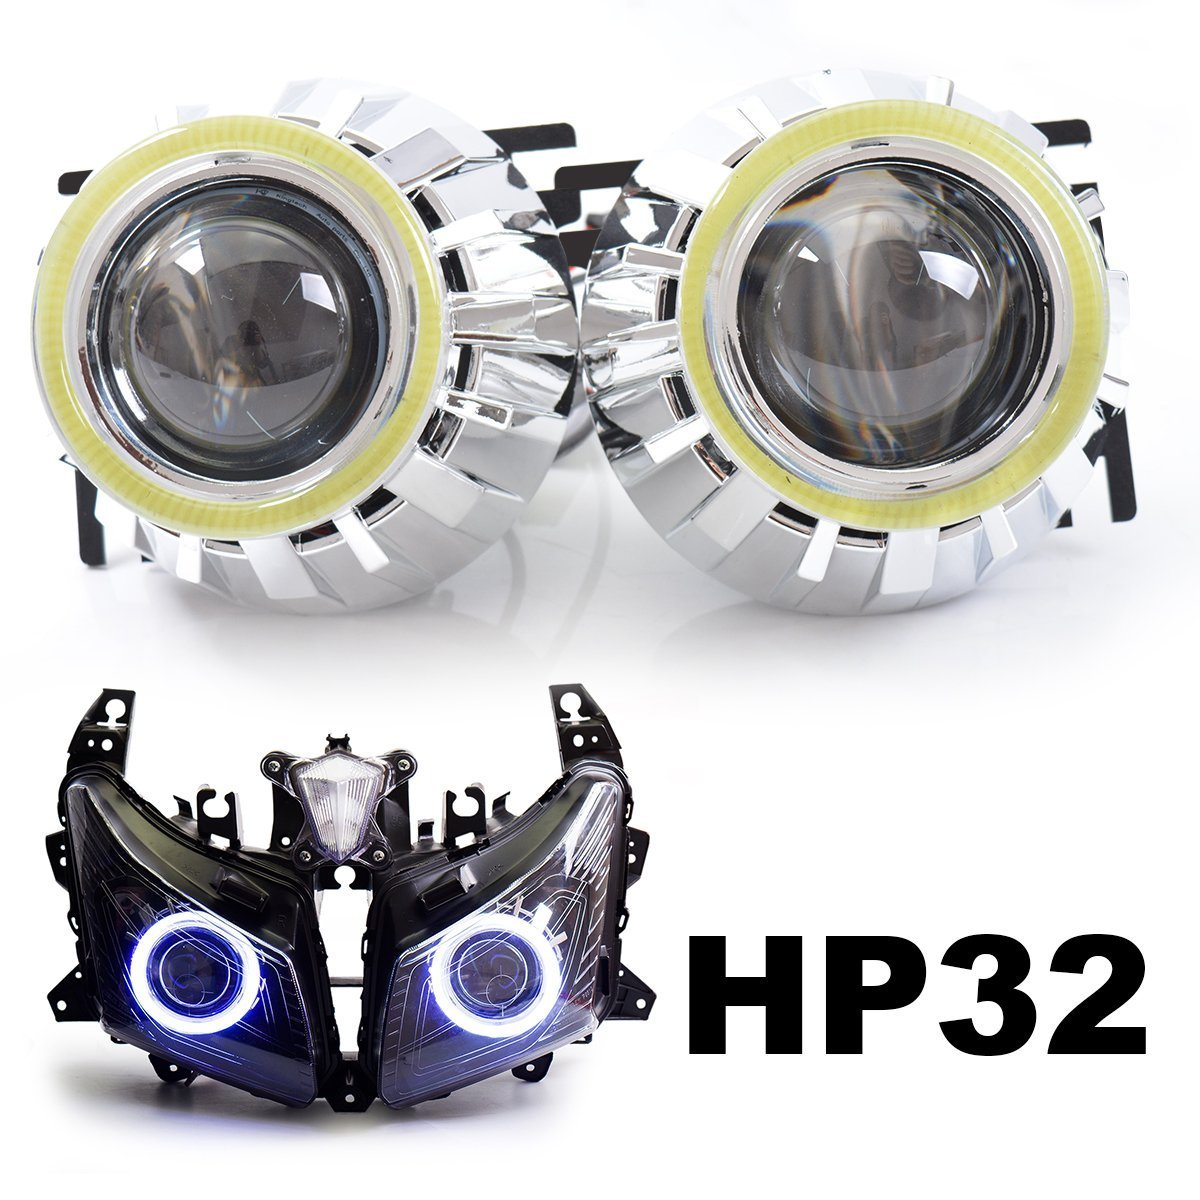 KT Tailor-Made HID Projector Kit HP32 for Yamaha T-Max 530 2012-2014 White Angel Eye